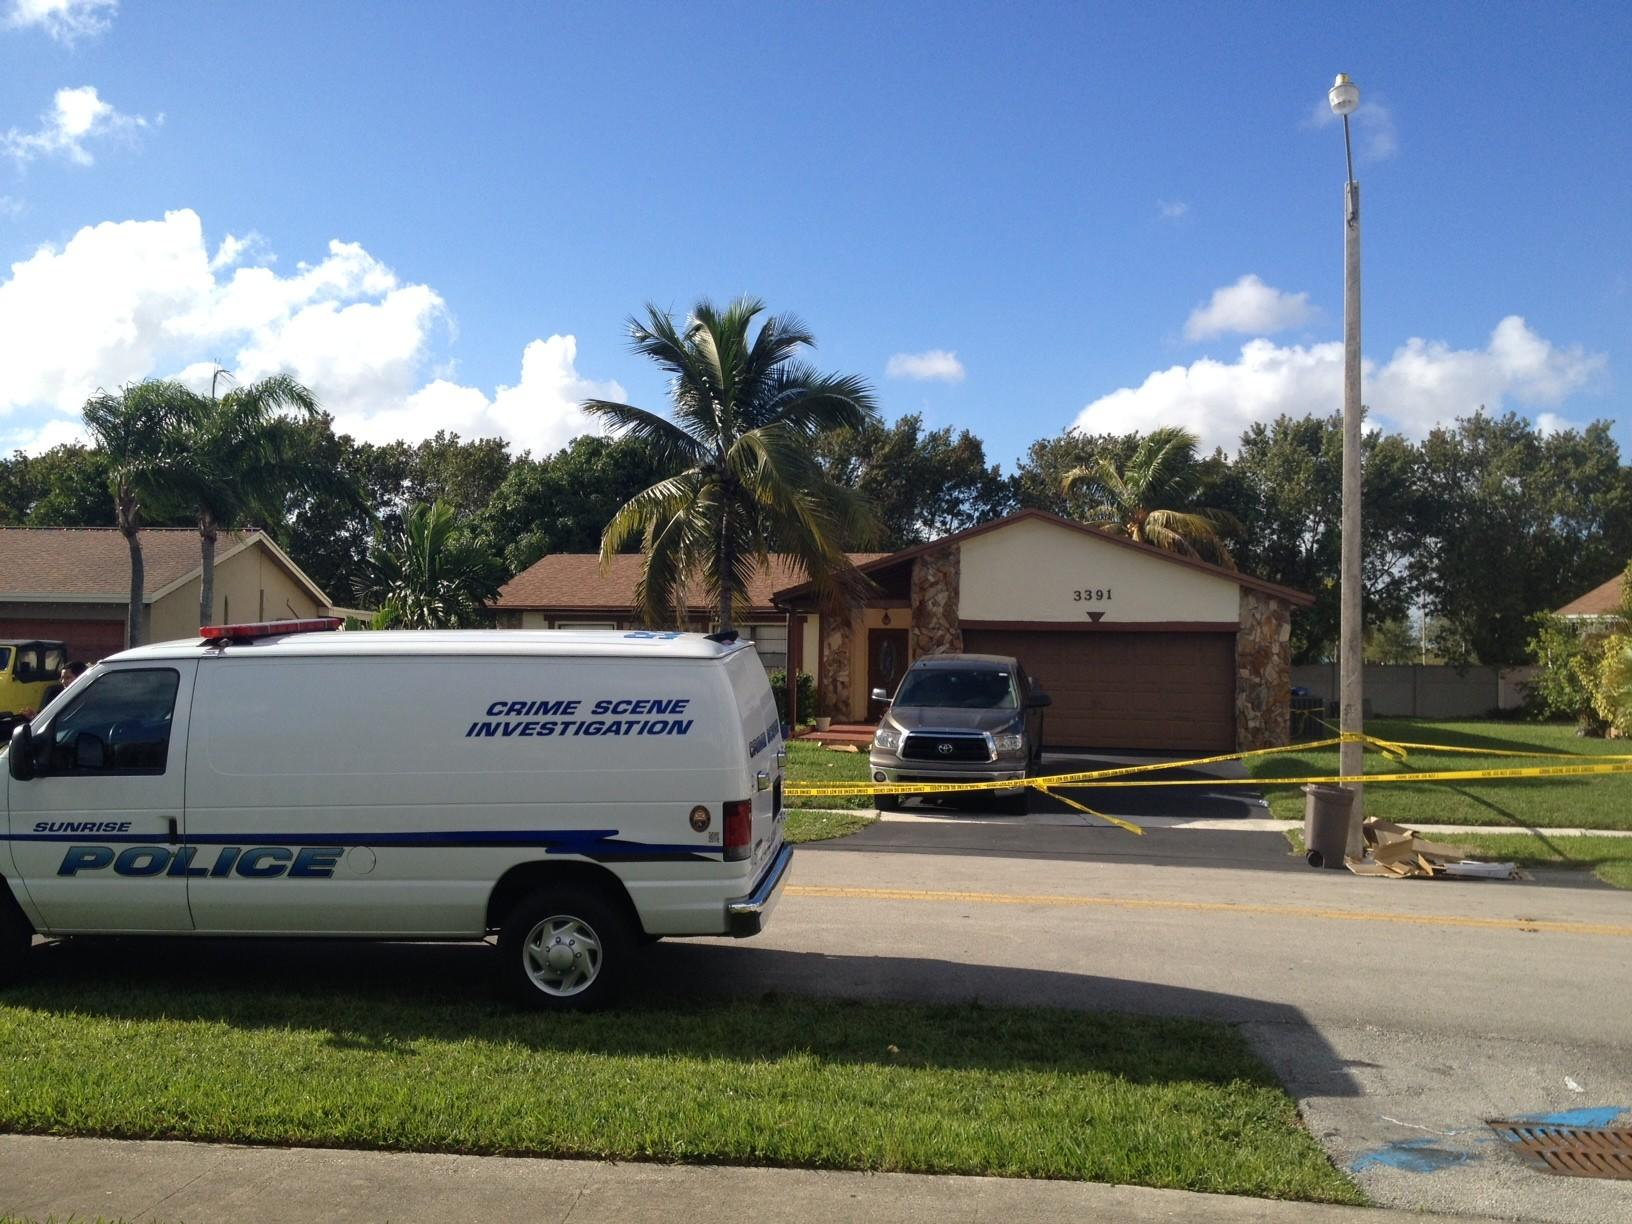 Sunrise police are investigating a homicide at a home on NW 97th Terrace